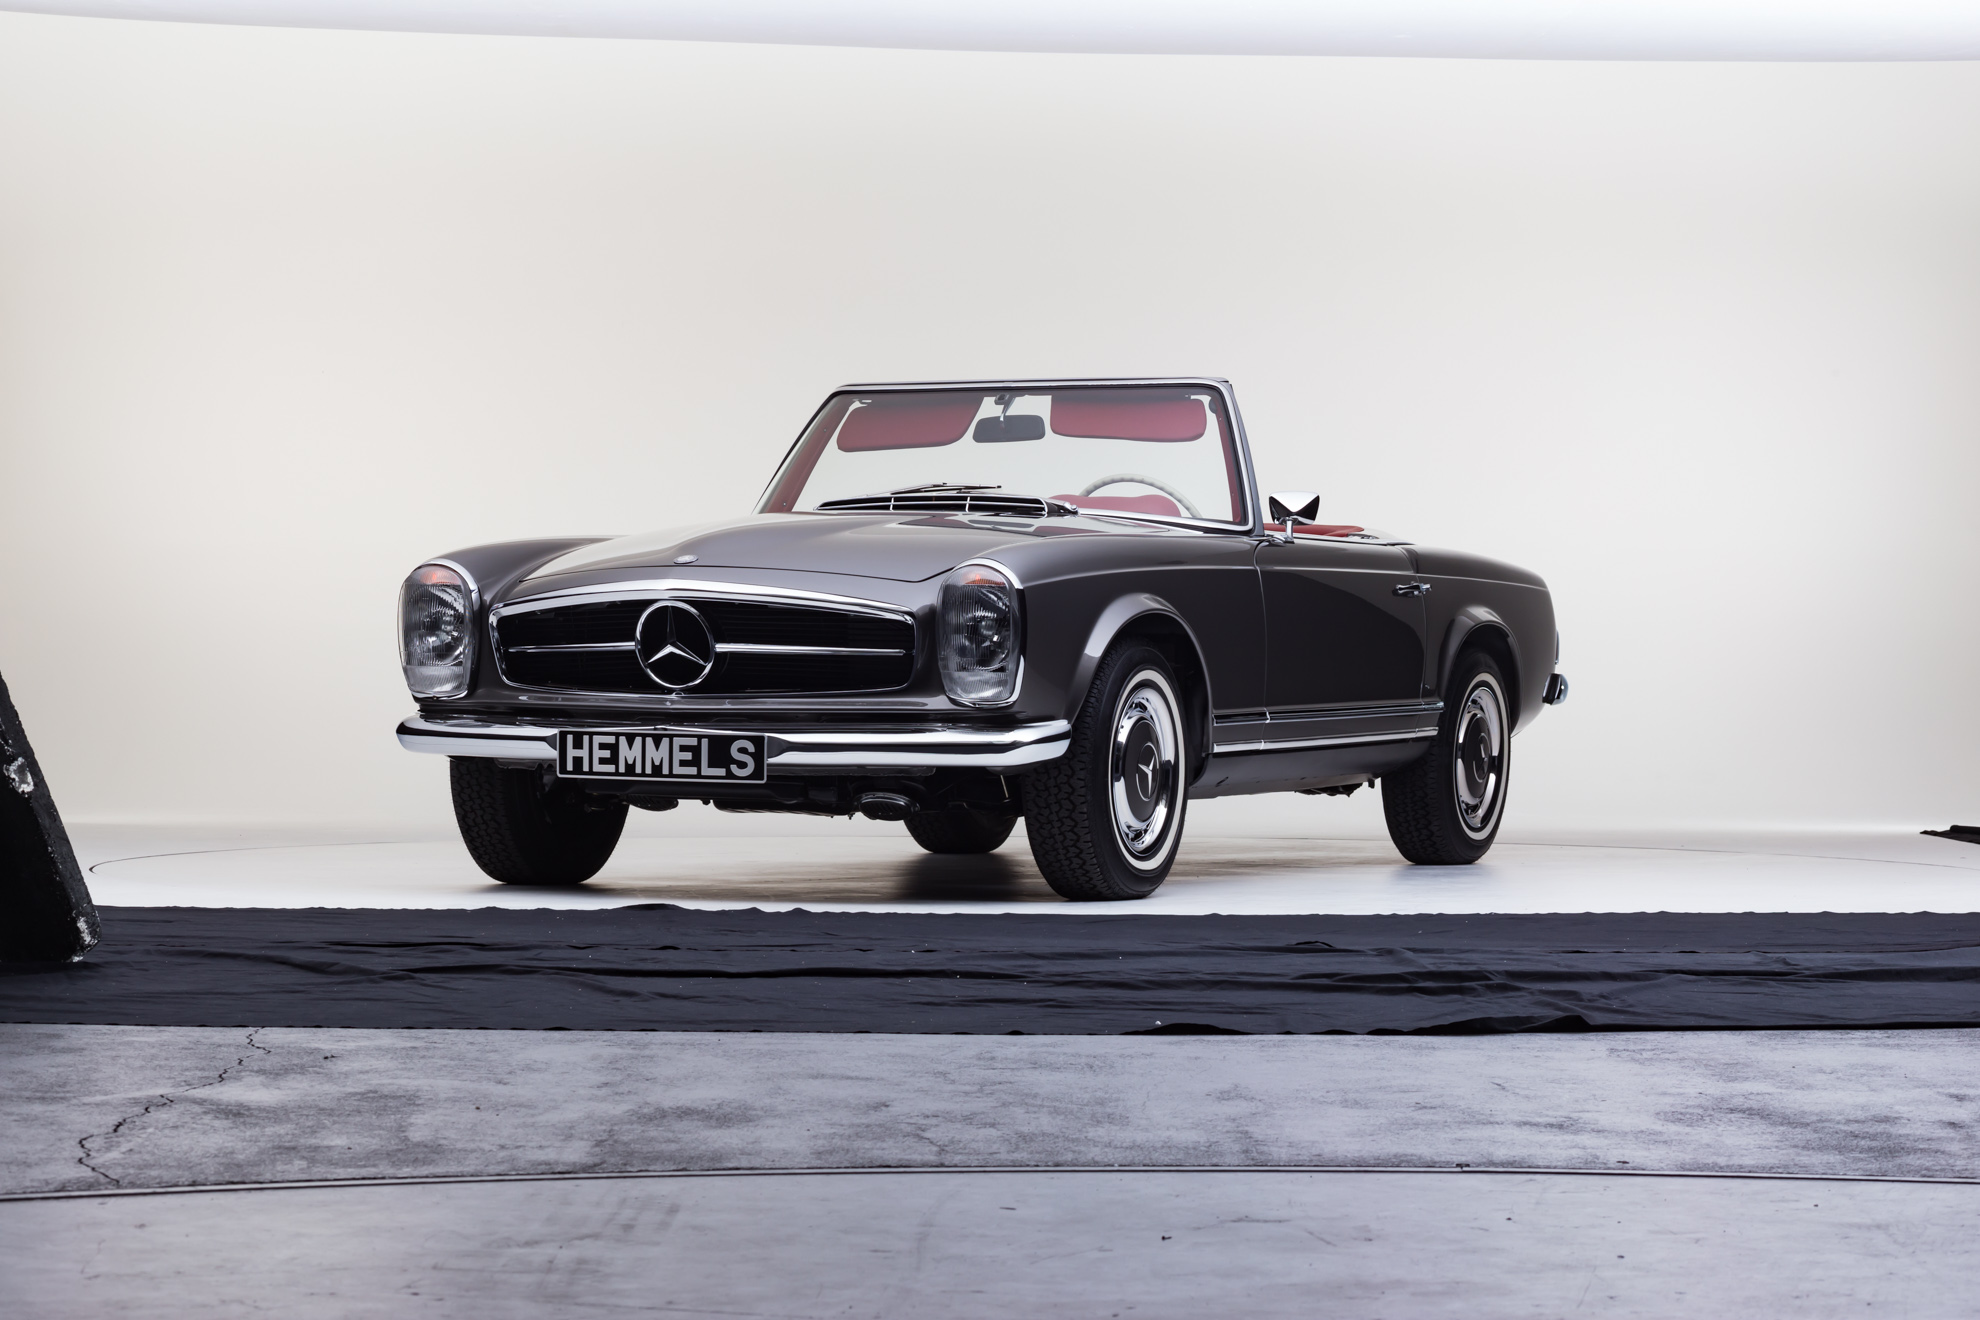 Classic 1971 Mercedes-Benz W113 280SL Pagoda Roadster in Anthracite with red interior